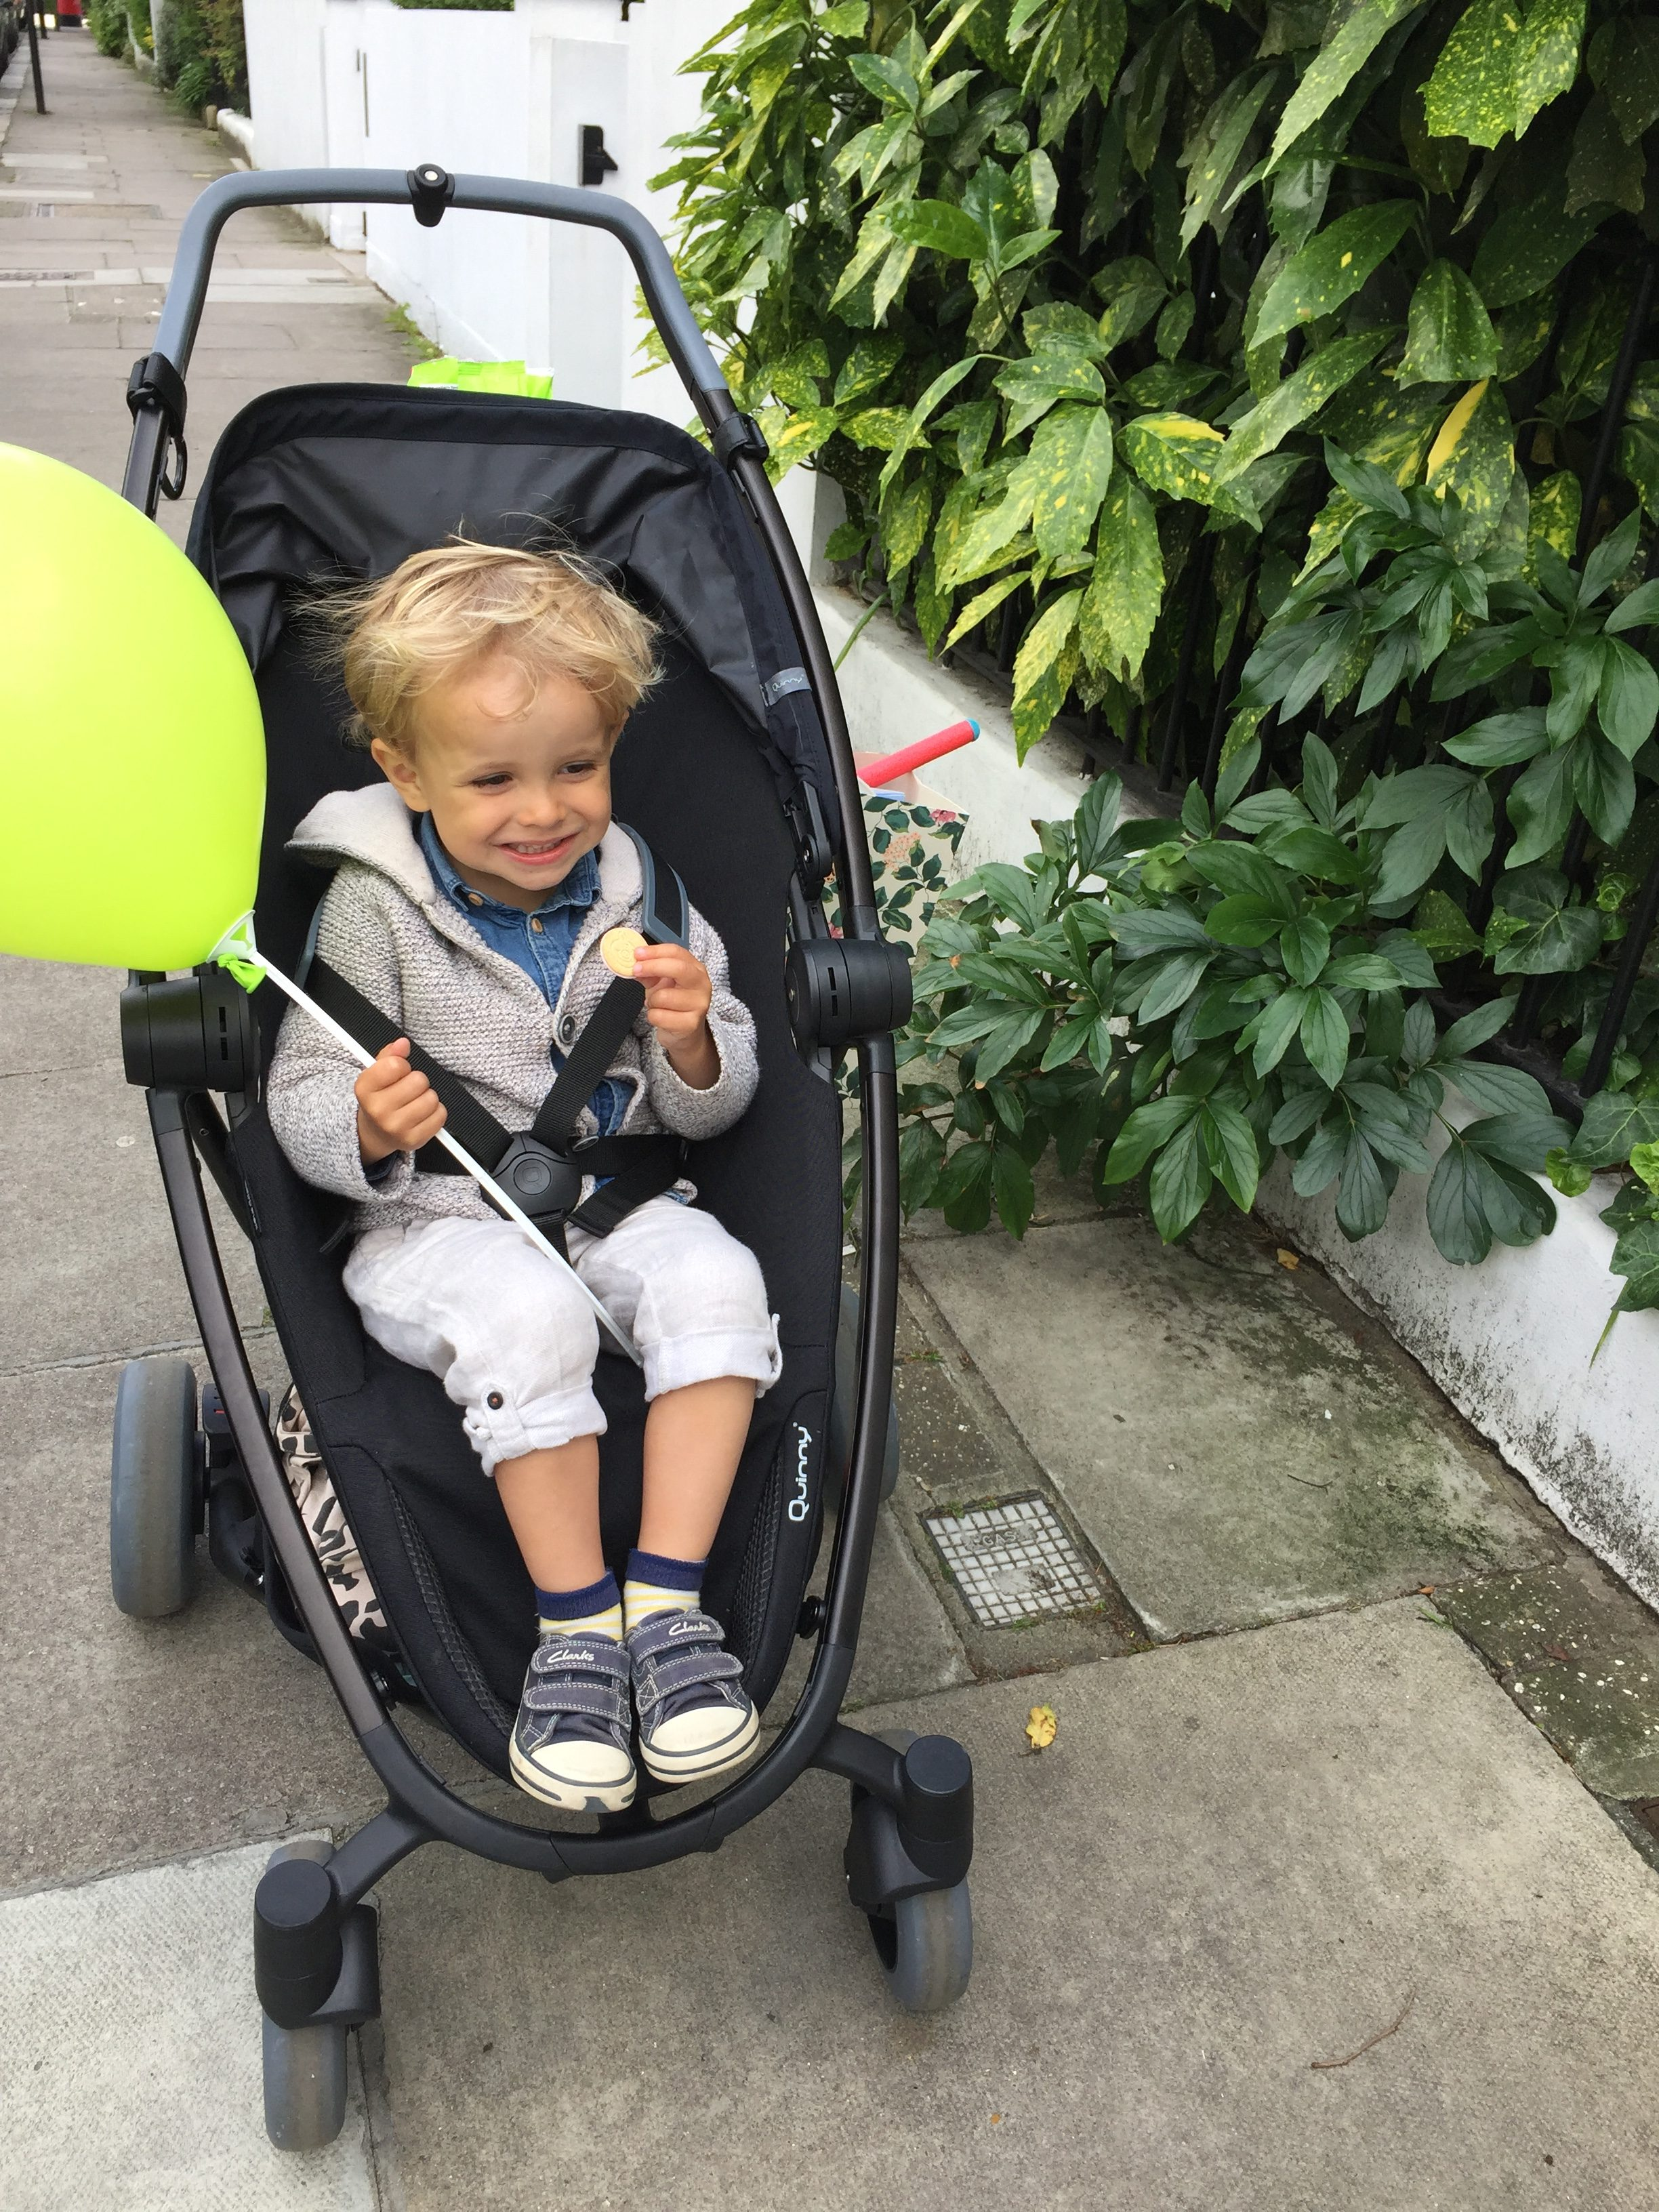 @that_mummy_smile's cover photo for 'Why our Quinny is still on essential. By mummy blogger Laura Rutherford'